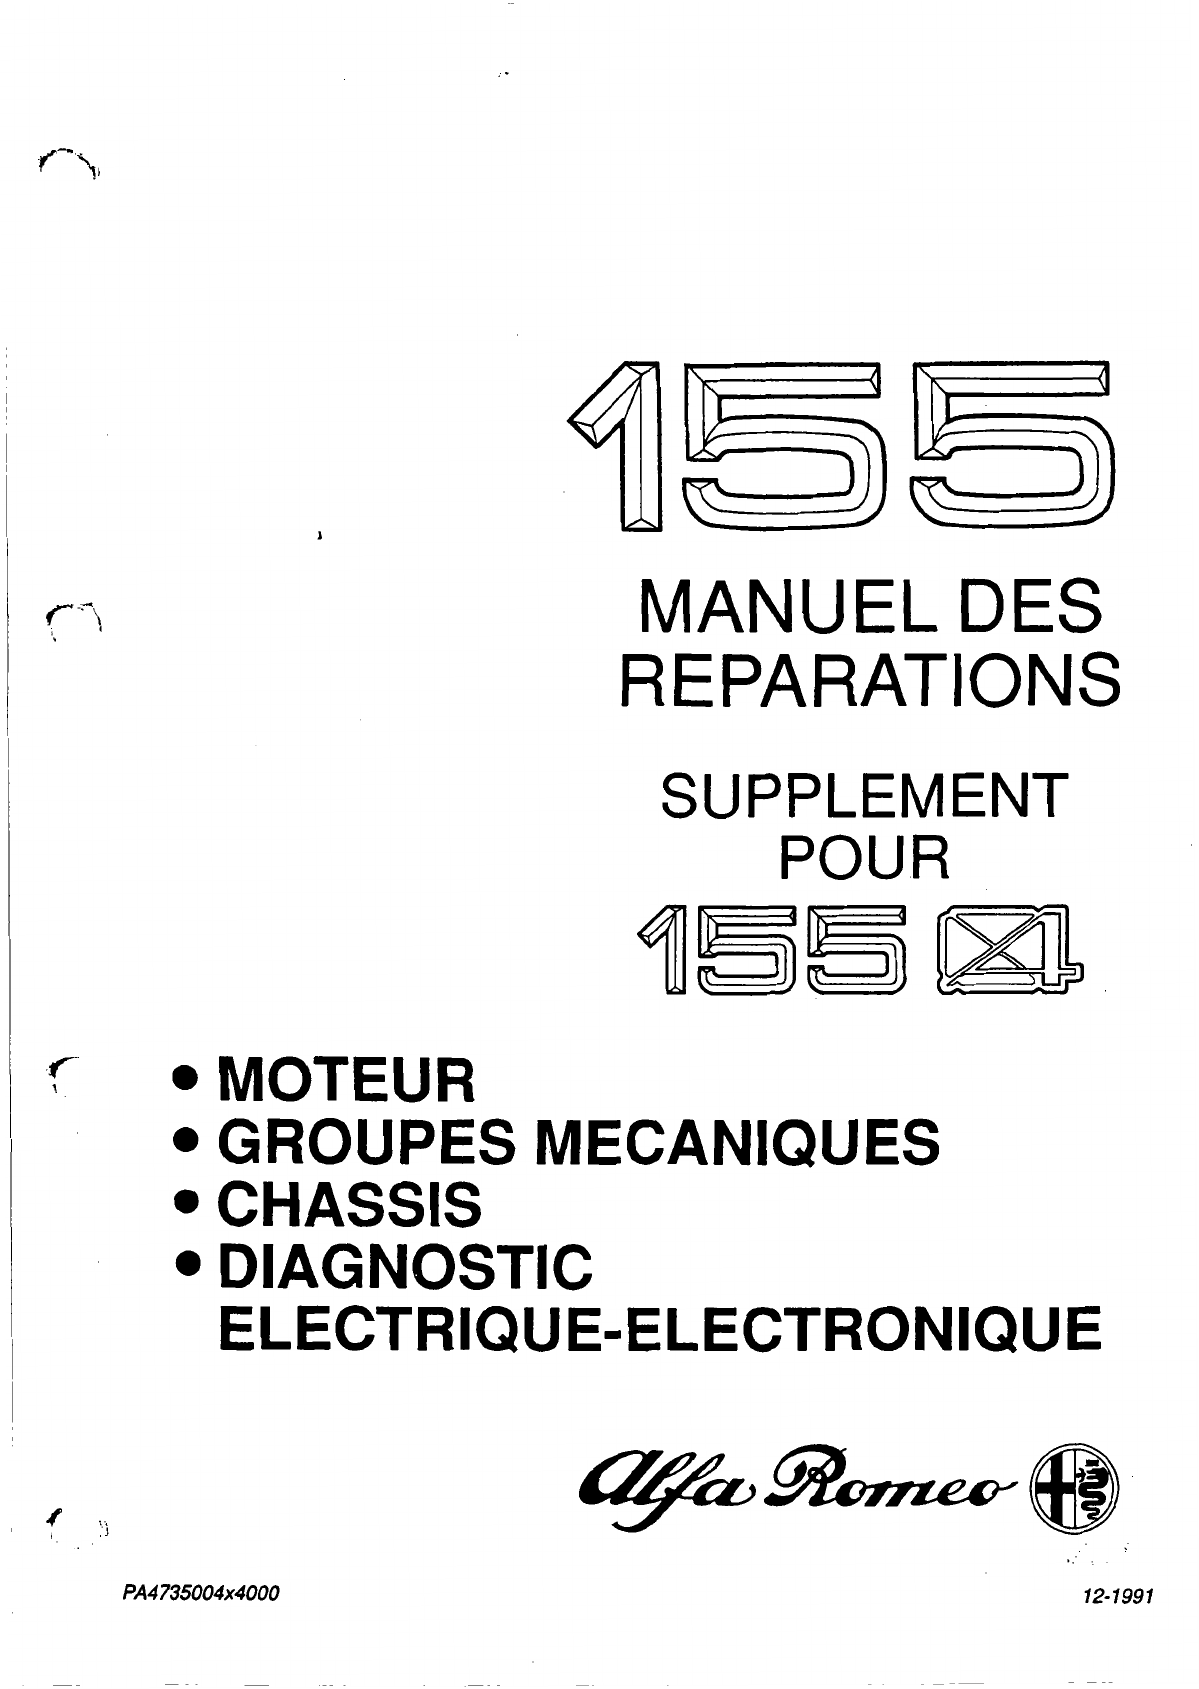 alfa romeo 155 1991 workshop manual q4 supplement pdf rh manuals co alfa romeo 155 service manual Alfa 156